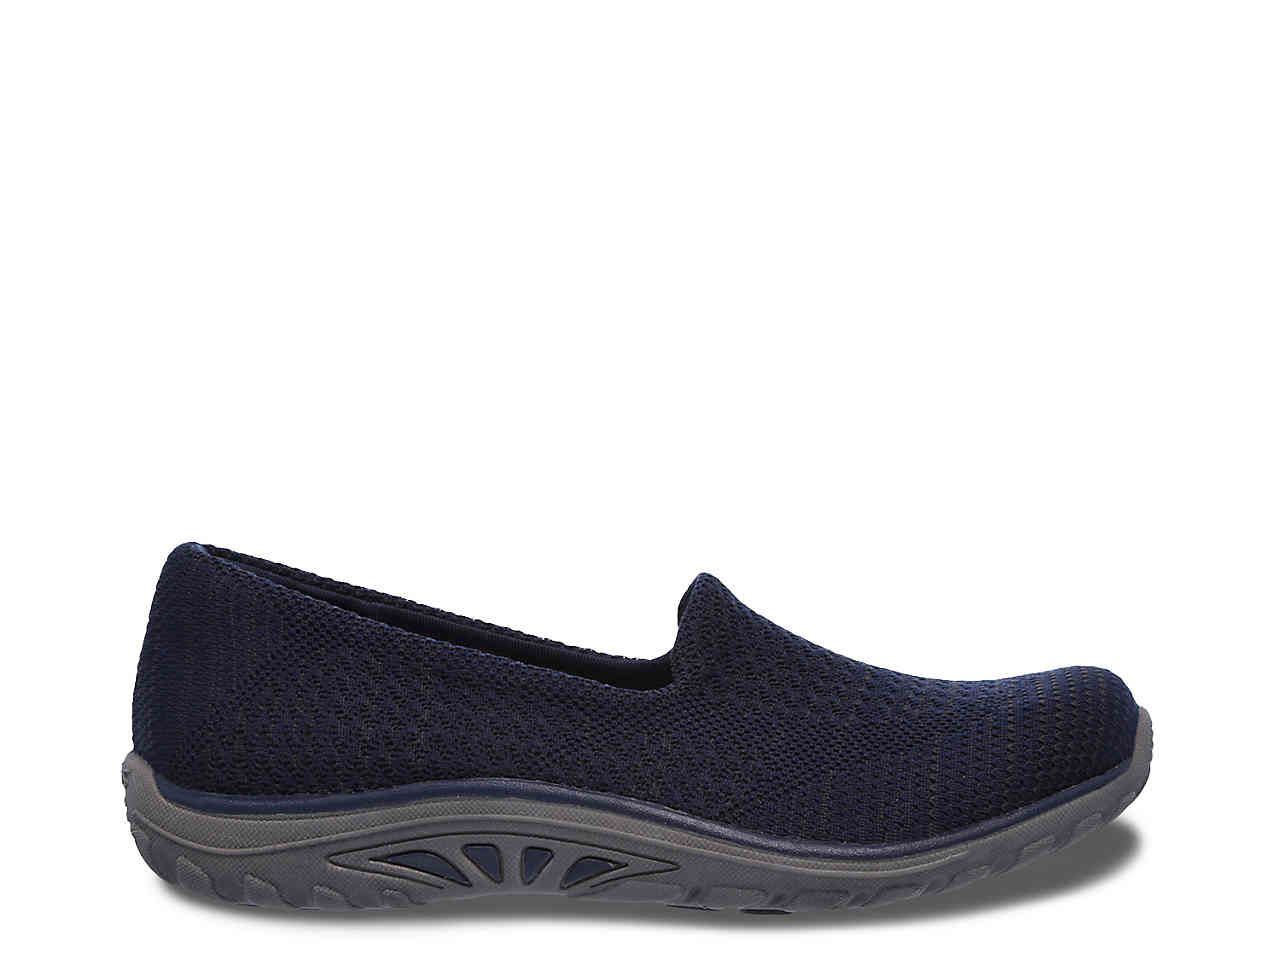 skechers relaxed fit reggae fest stitch up women's shoes